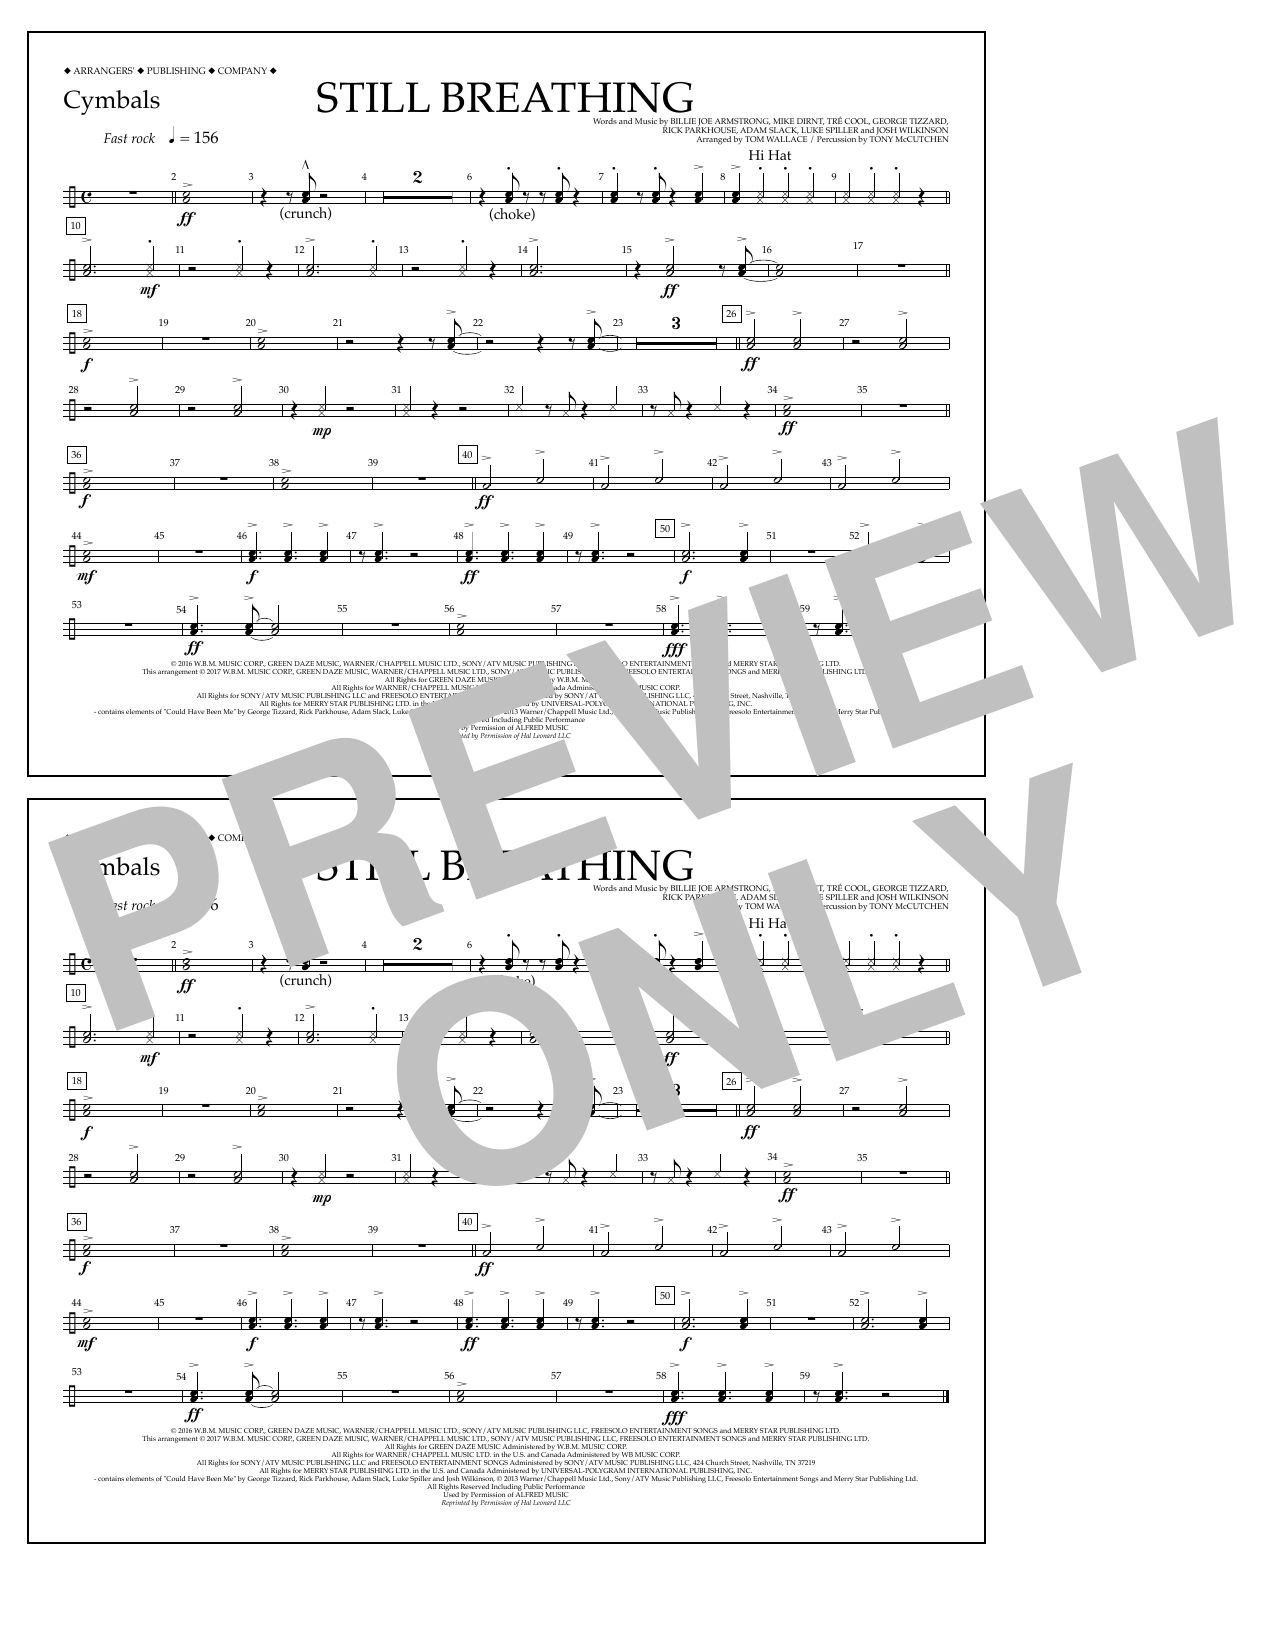 Still Breathing - Cymbals Sheet Music